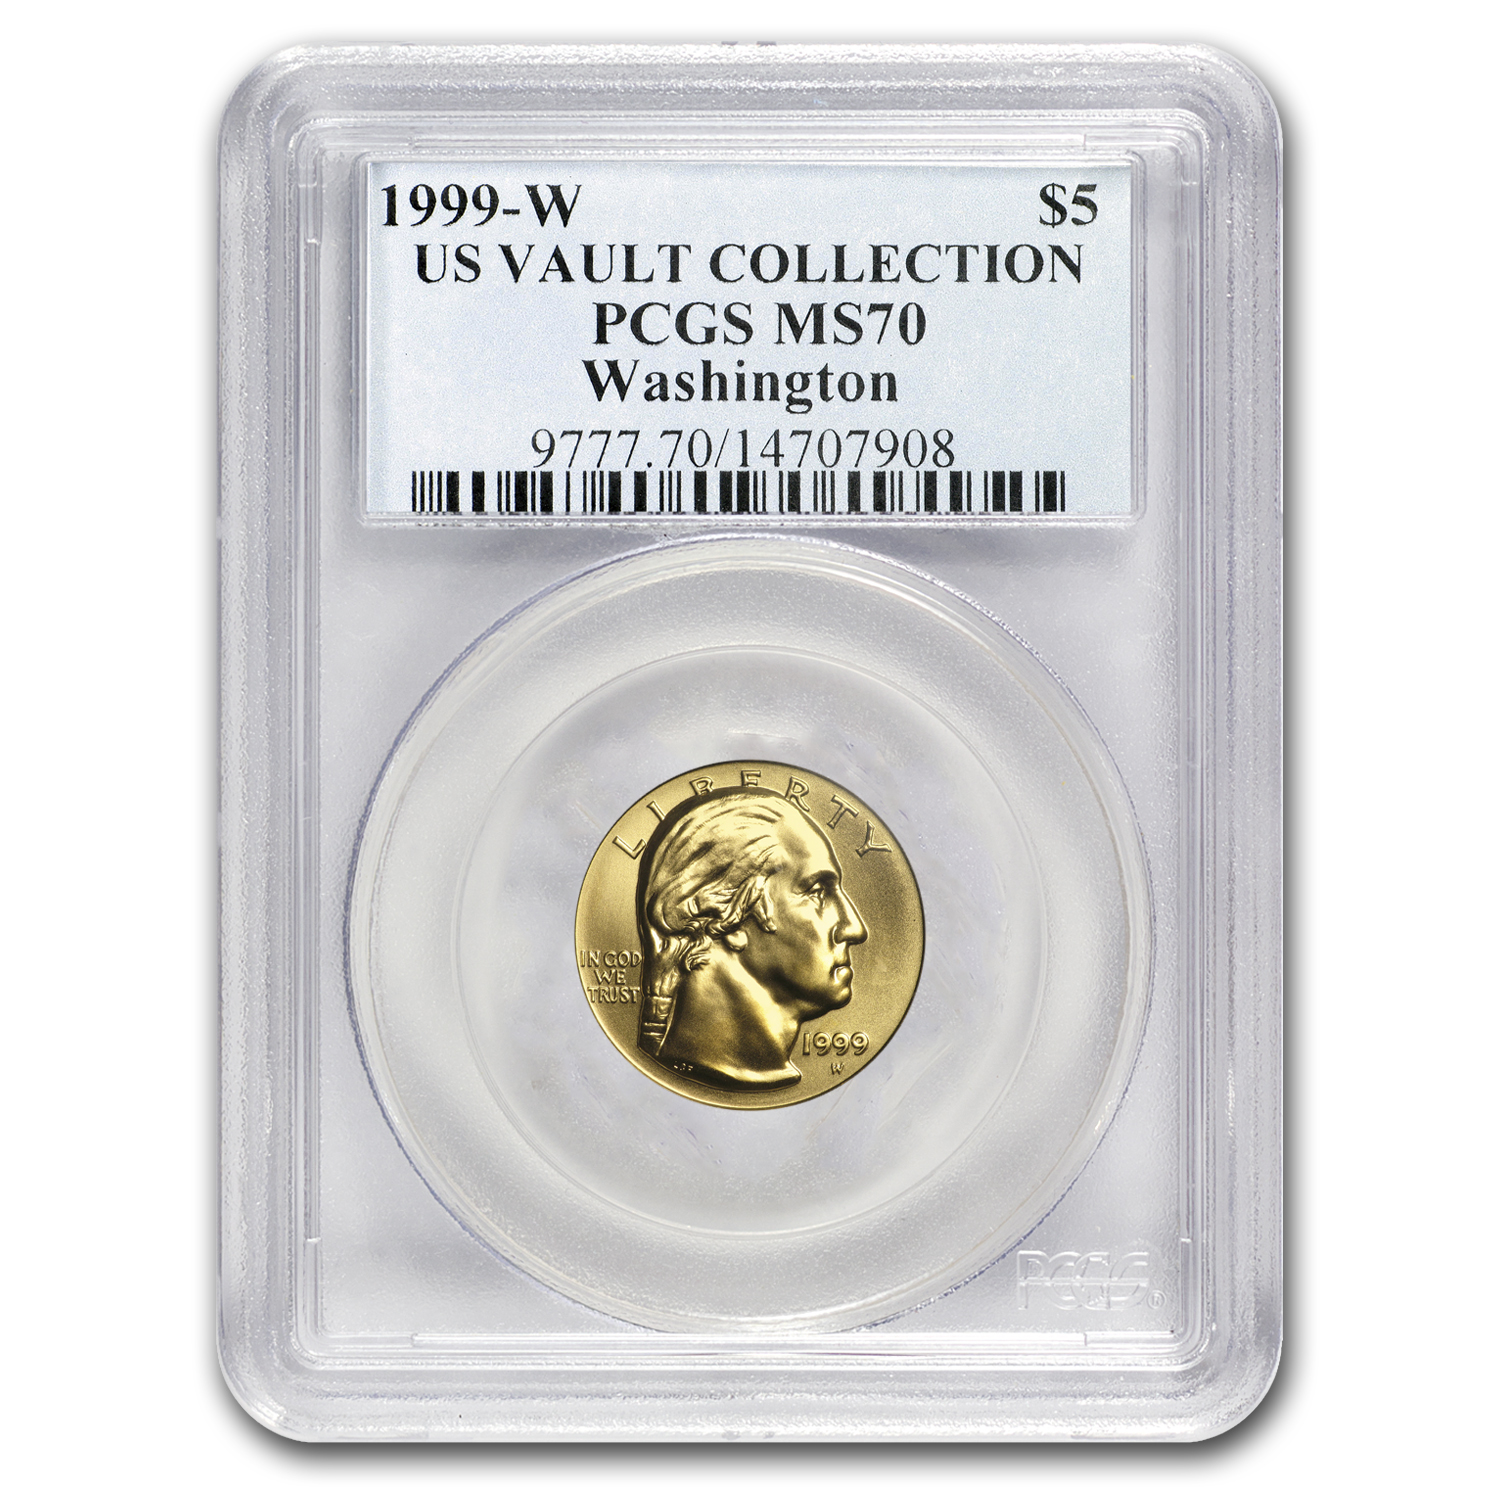 1999-W Gold $5 Commem George Washington MS-70 PCGS